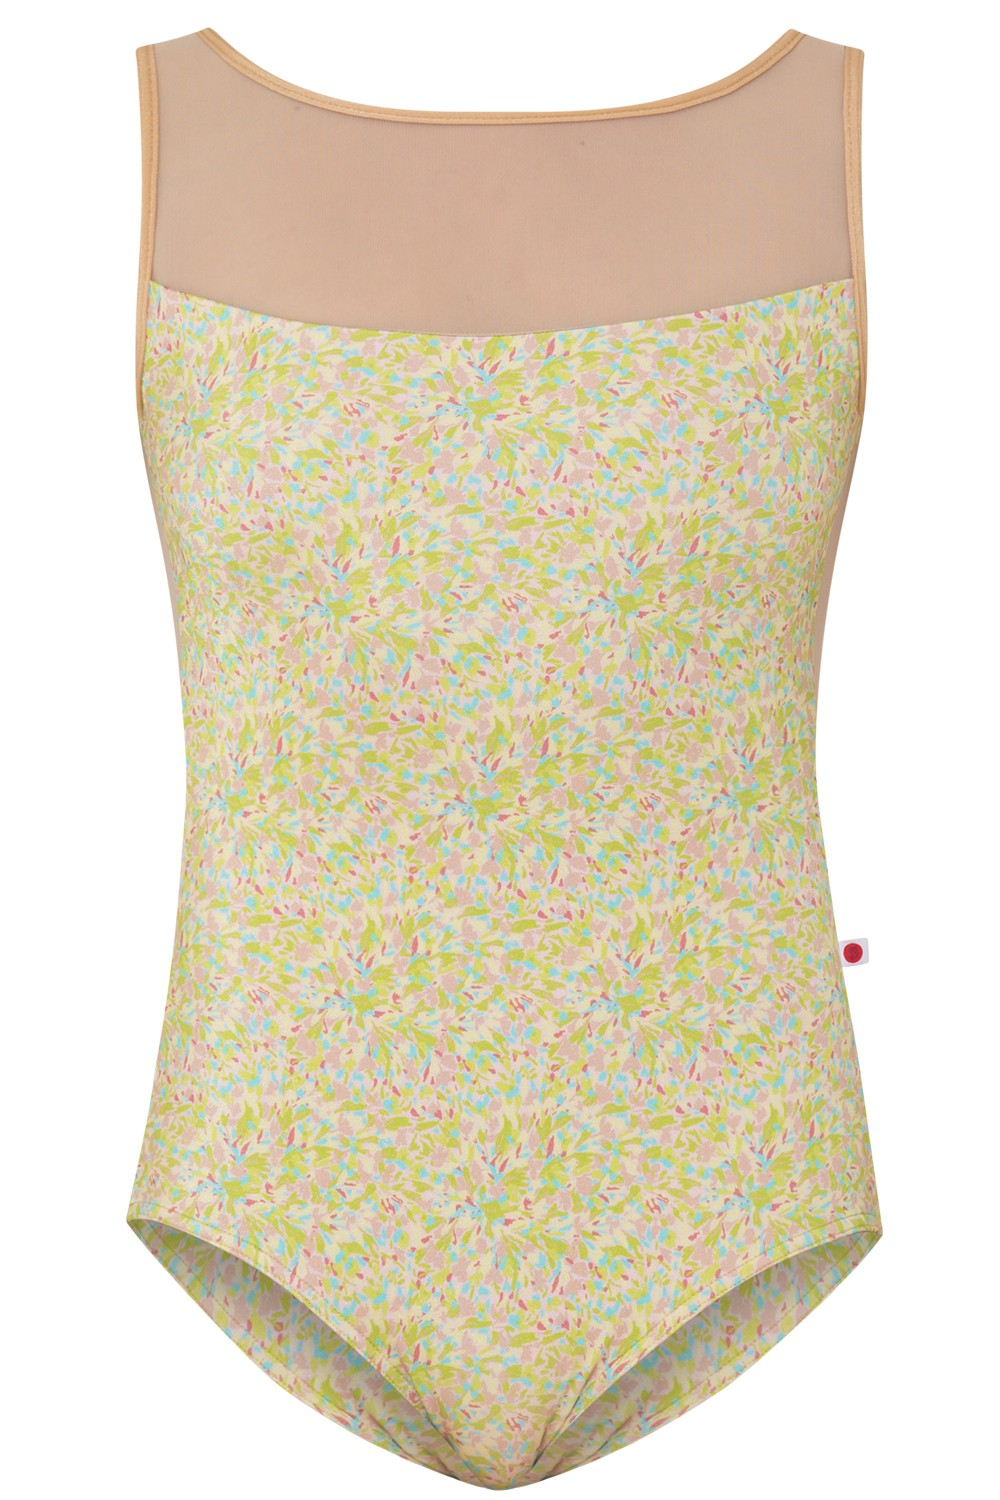 Meagan Lime Meadow Brule Mesh N-Brule